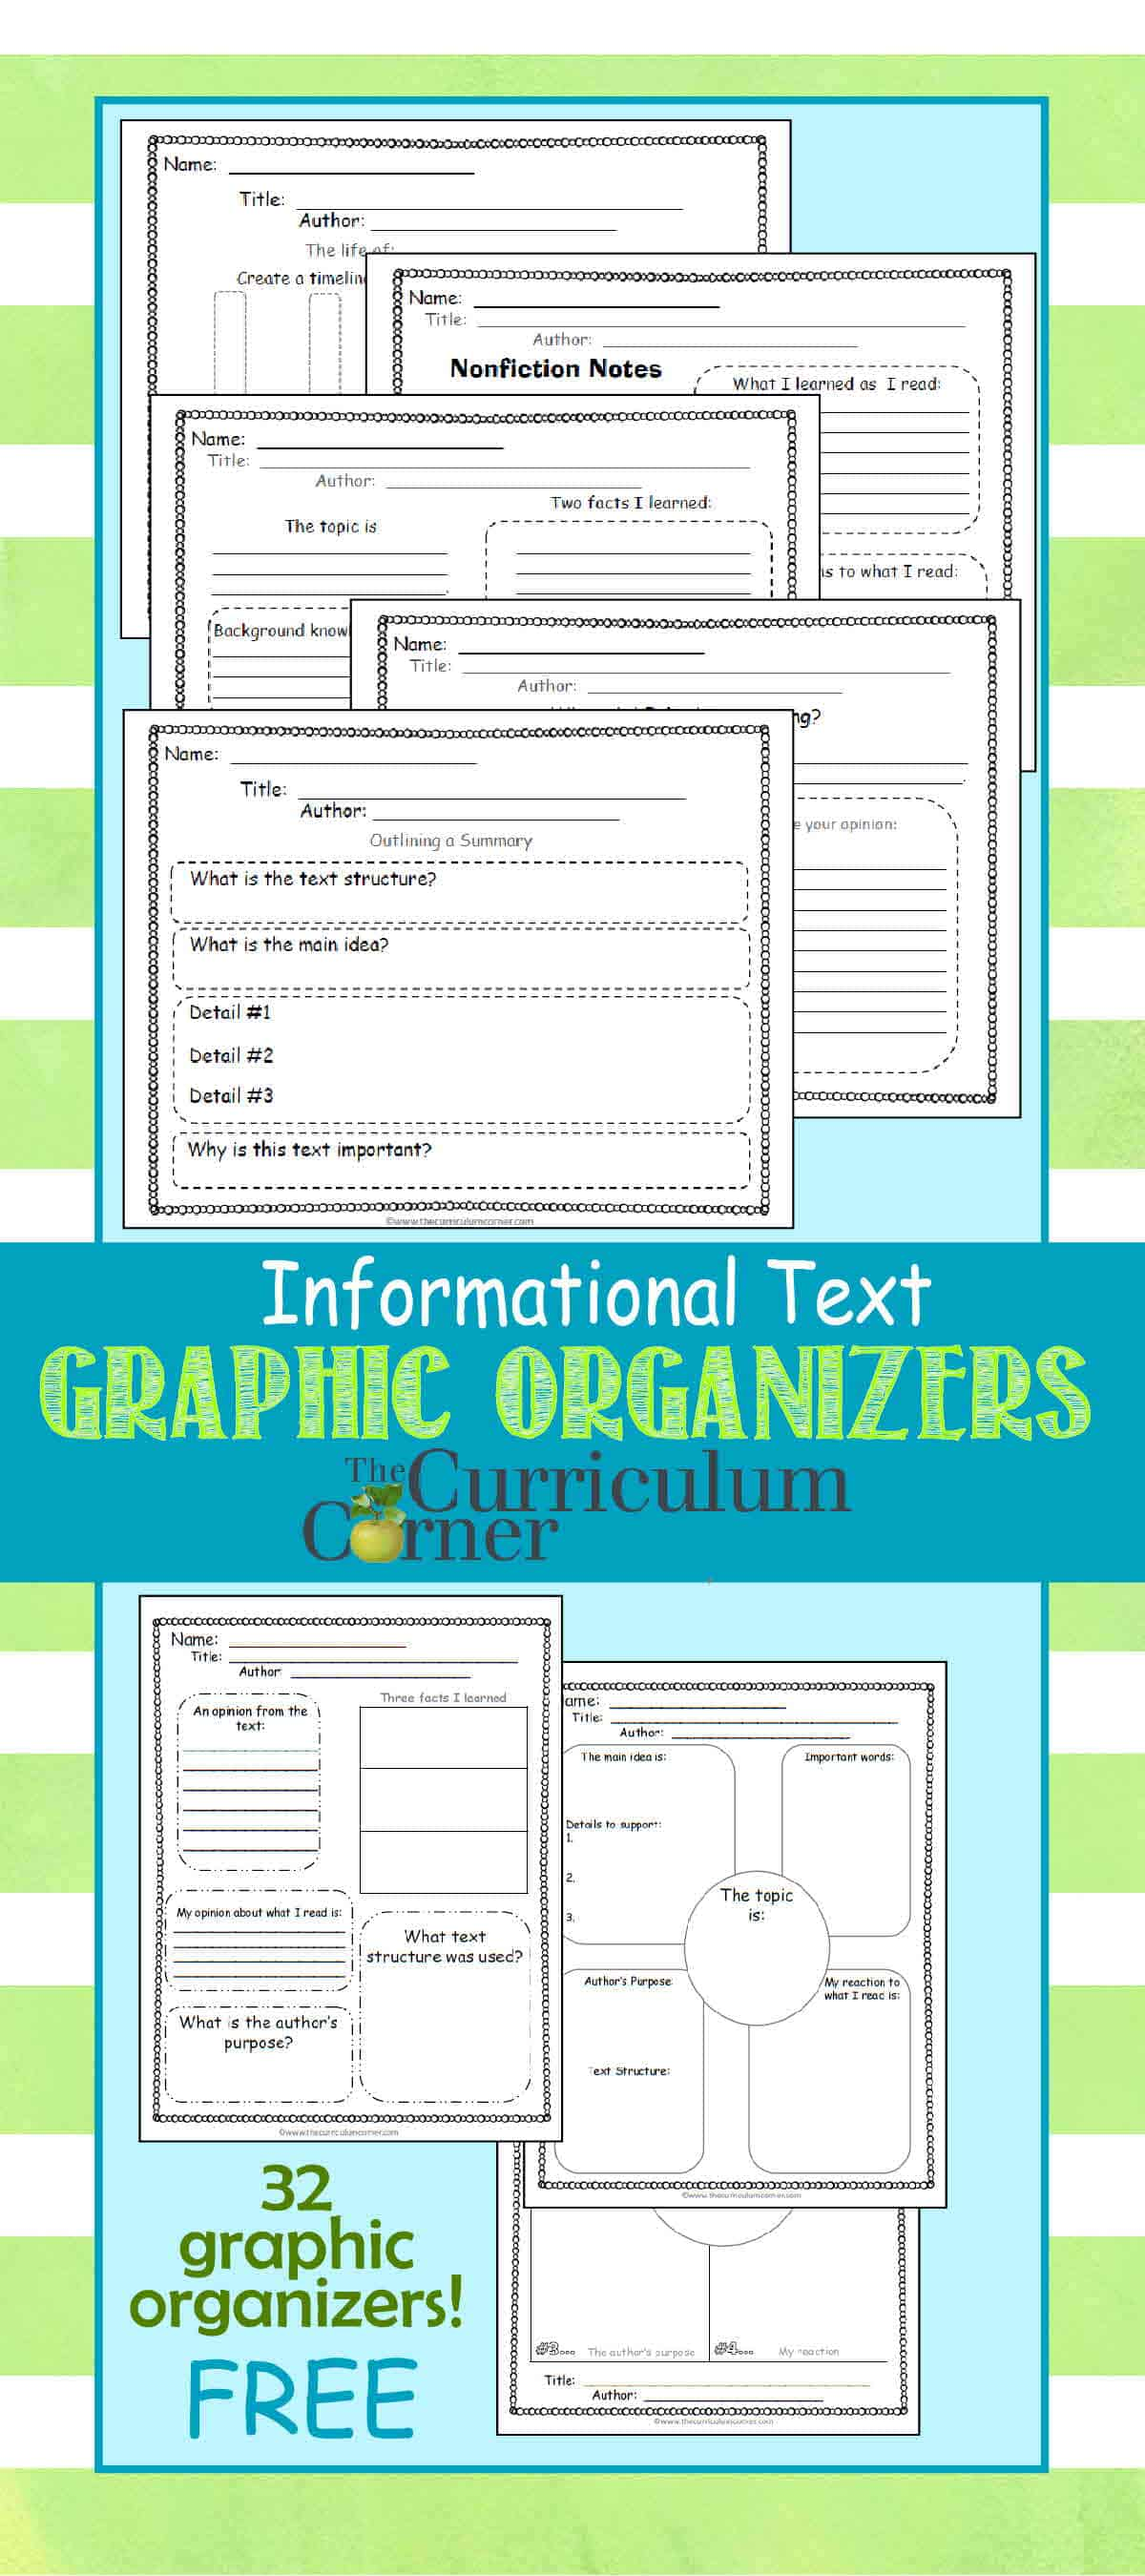 informational text graphic organizers the curriculum corner  informational text graphic organizers for 4th 5th grades from the curriculum corner